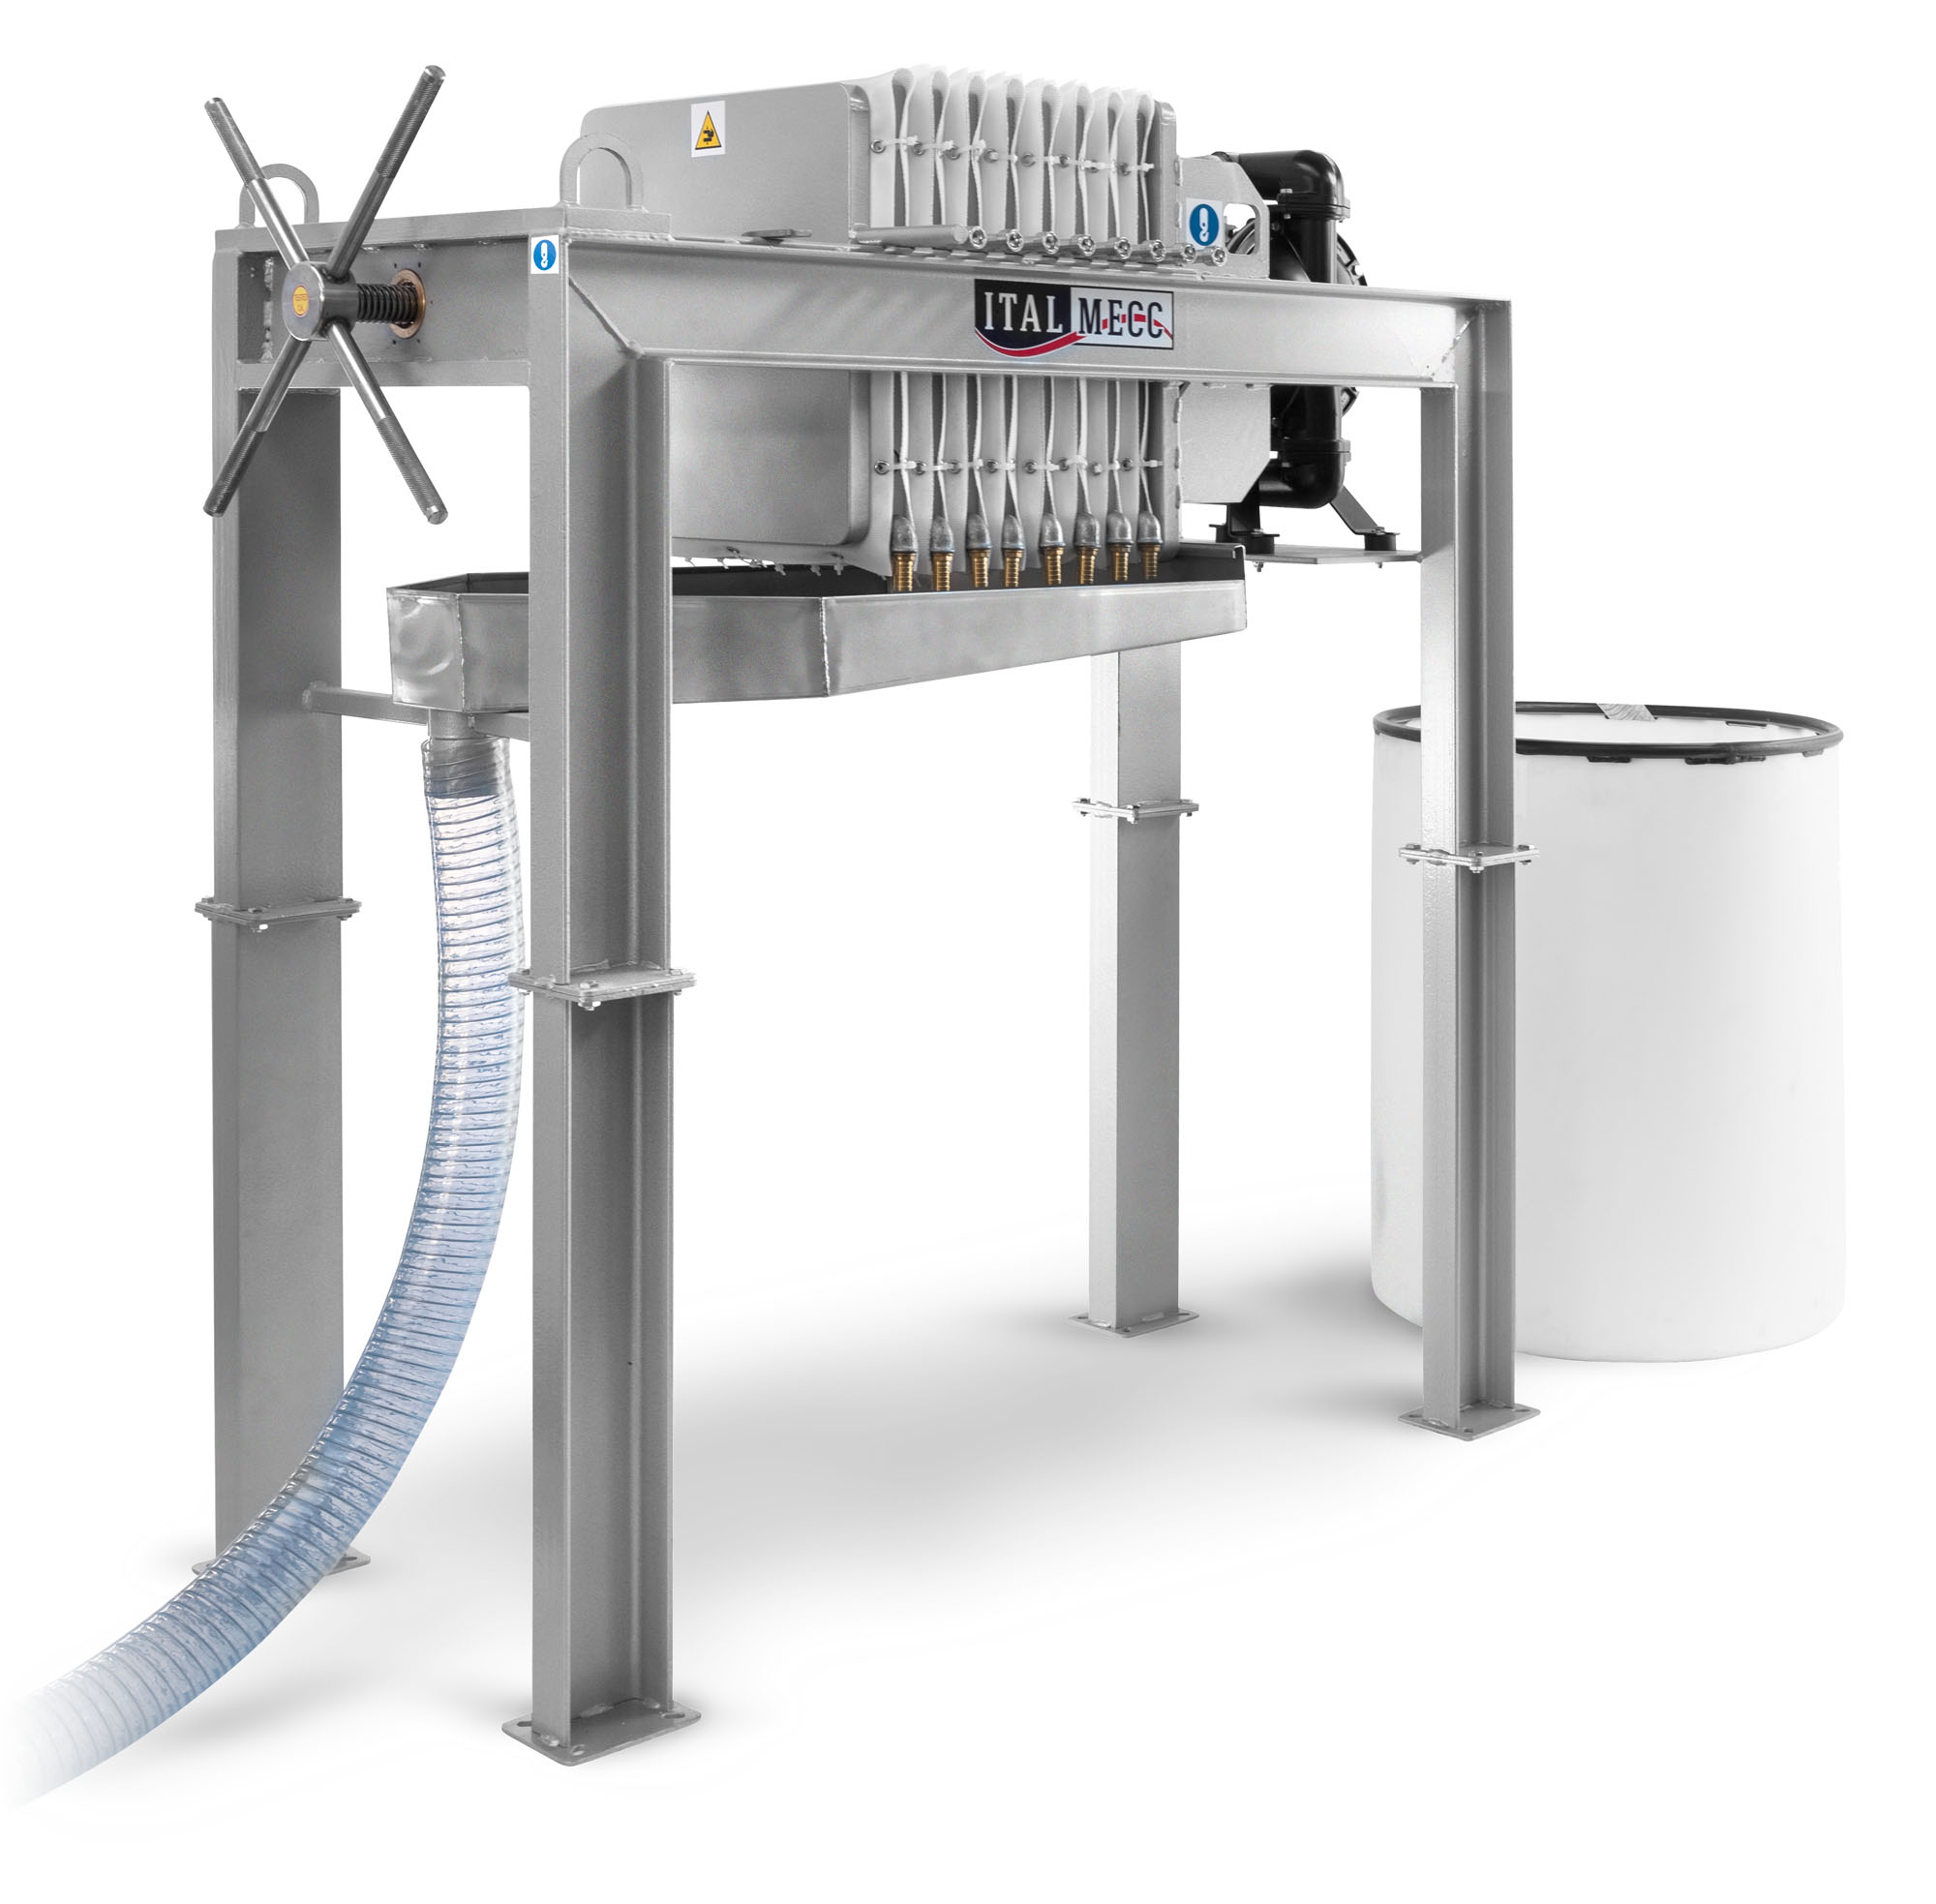 water filtration for marble industry - semiautomatic filter-press sa500 - Italmecc